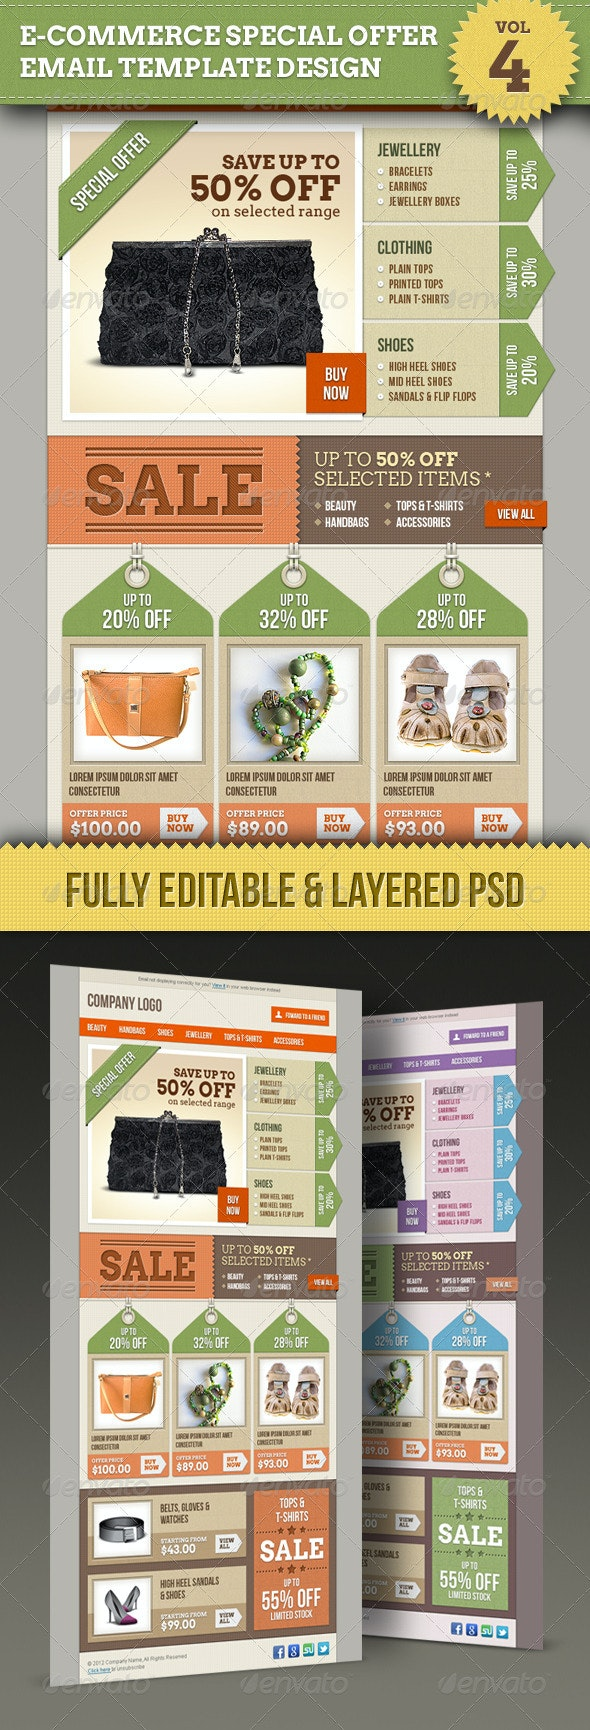 E-commerce Offers Email Template Design Vol.4 - E-newsletters Web Elements